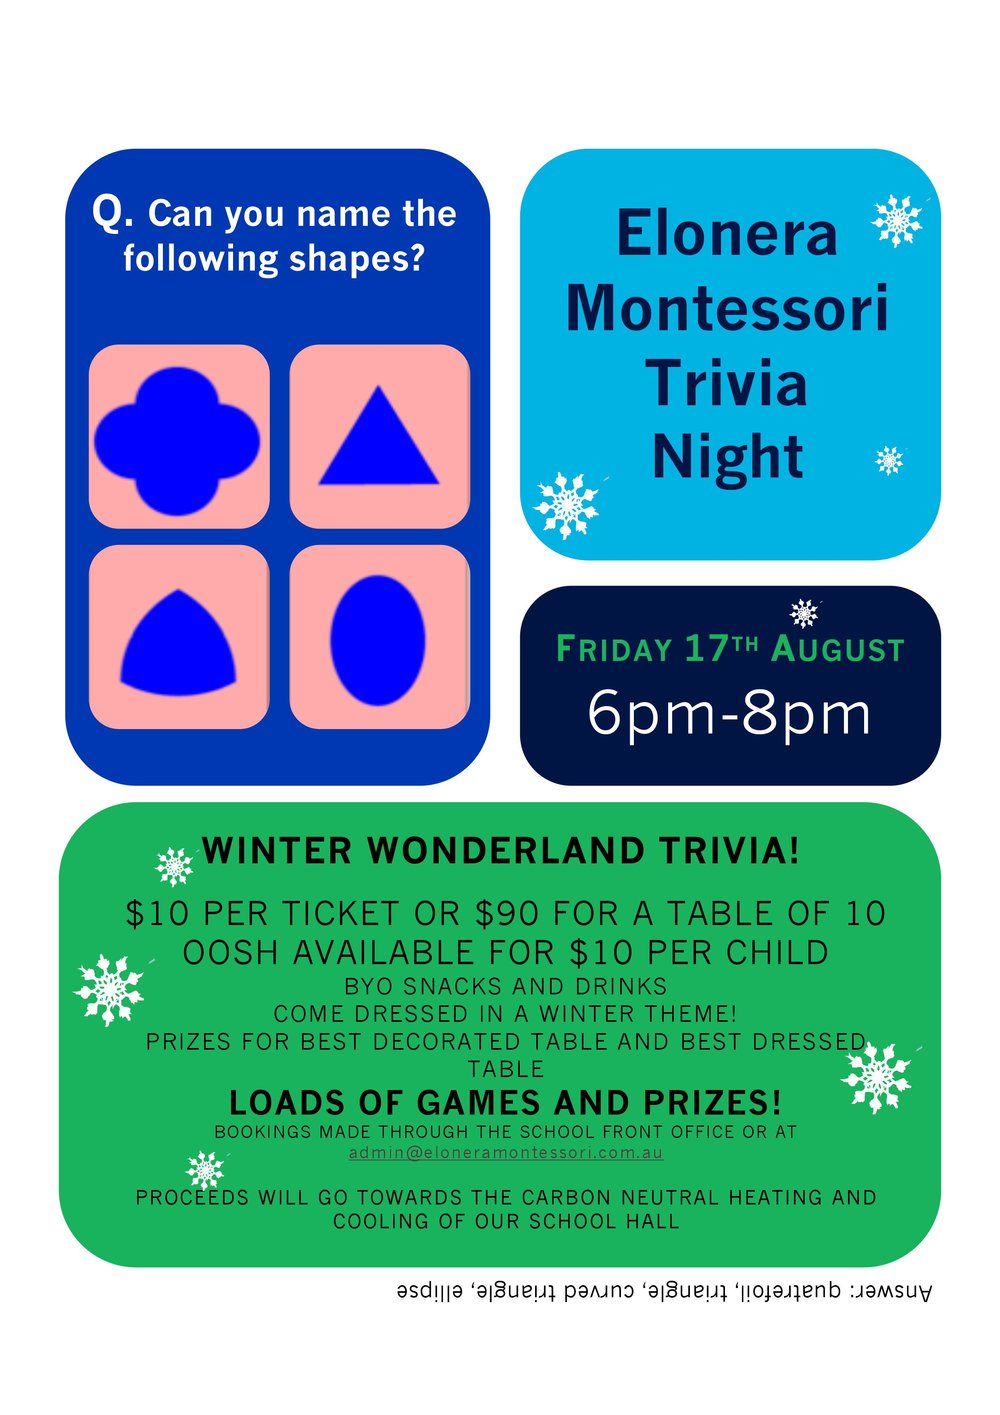 Elonera Trivia Night Flyer.jpg